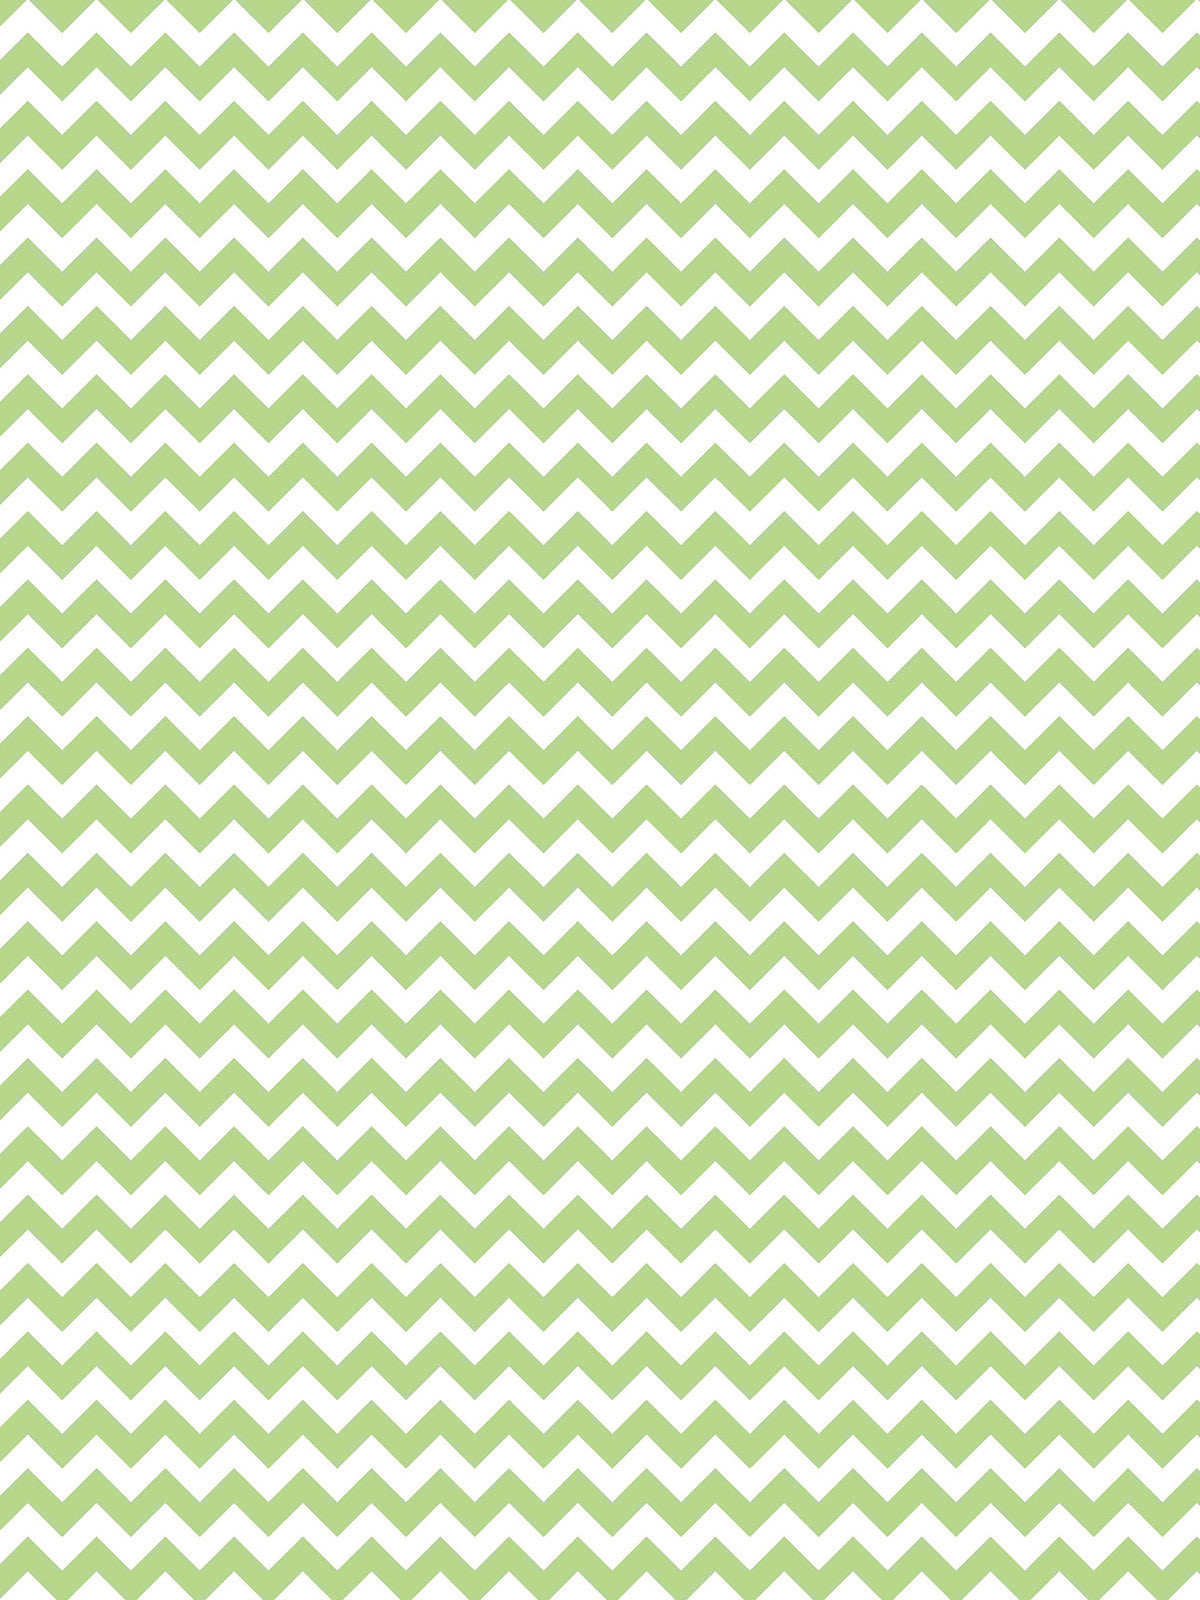 Chevron Lime Printed Photo Background / 9803 - DropPlace